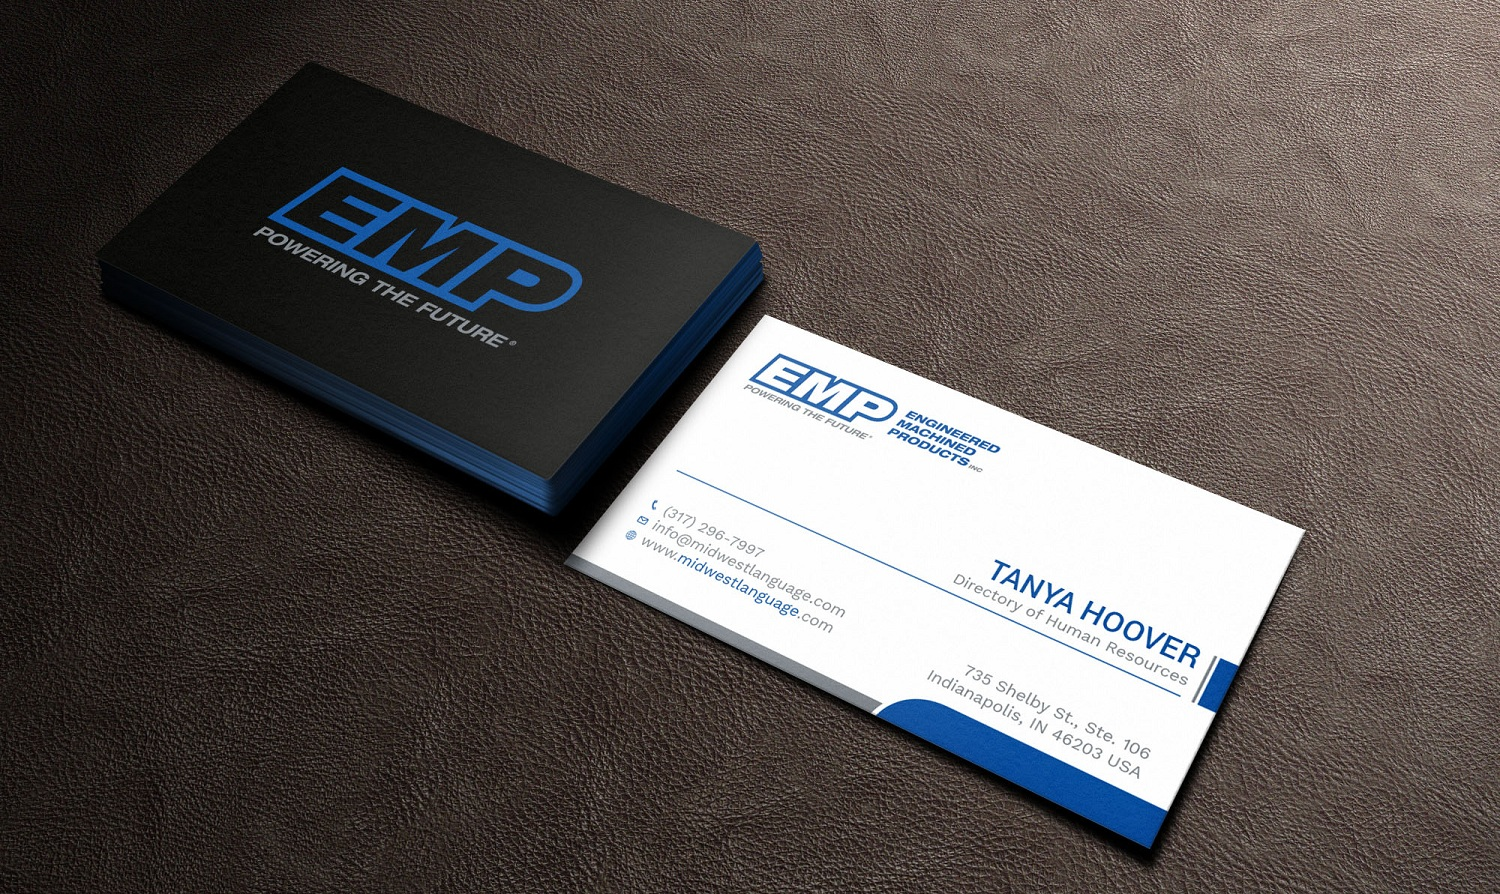 Bold serious engineering business card design for engineered bold serious engineering business card design for engineered machined products inc in united states design 17745041 reheart Image collections